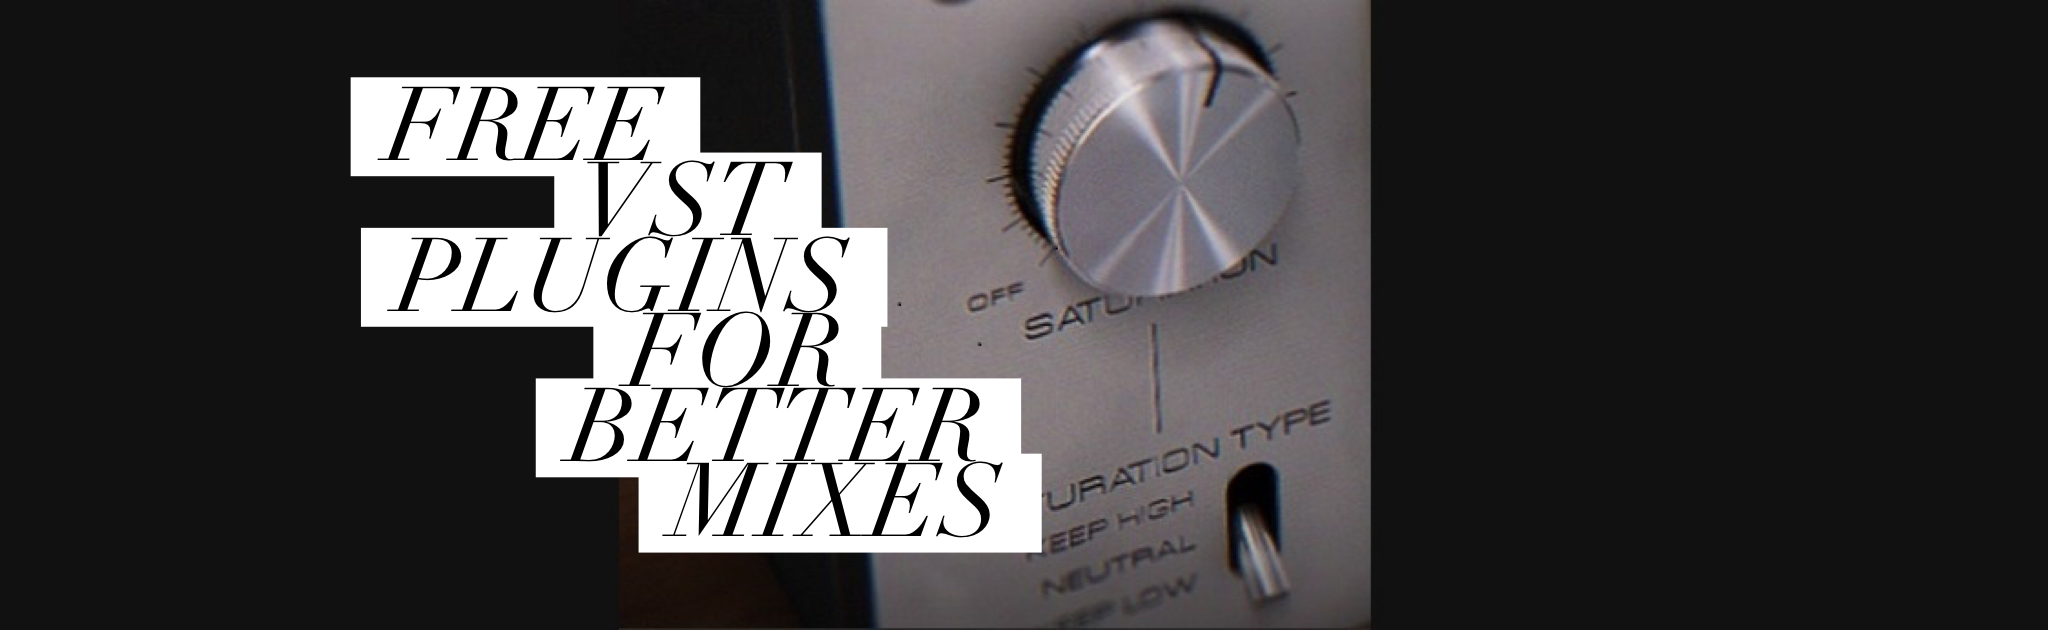 5 Free VST/AU Plugins That Help You Create Better Mixes